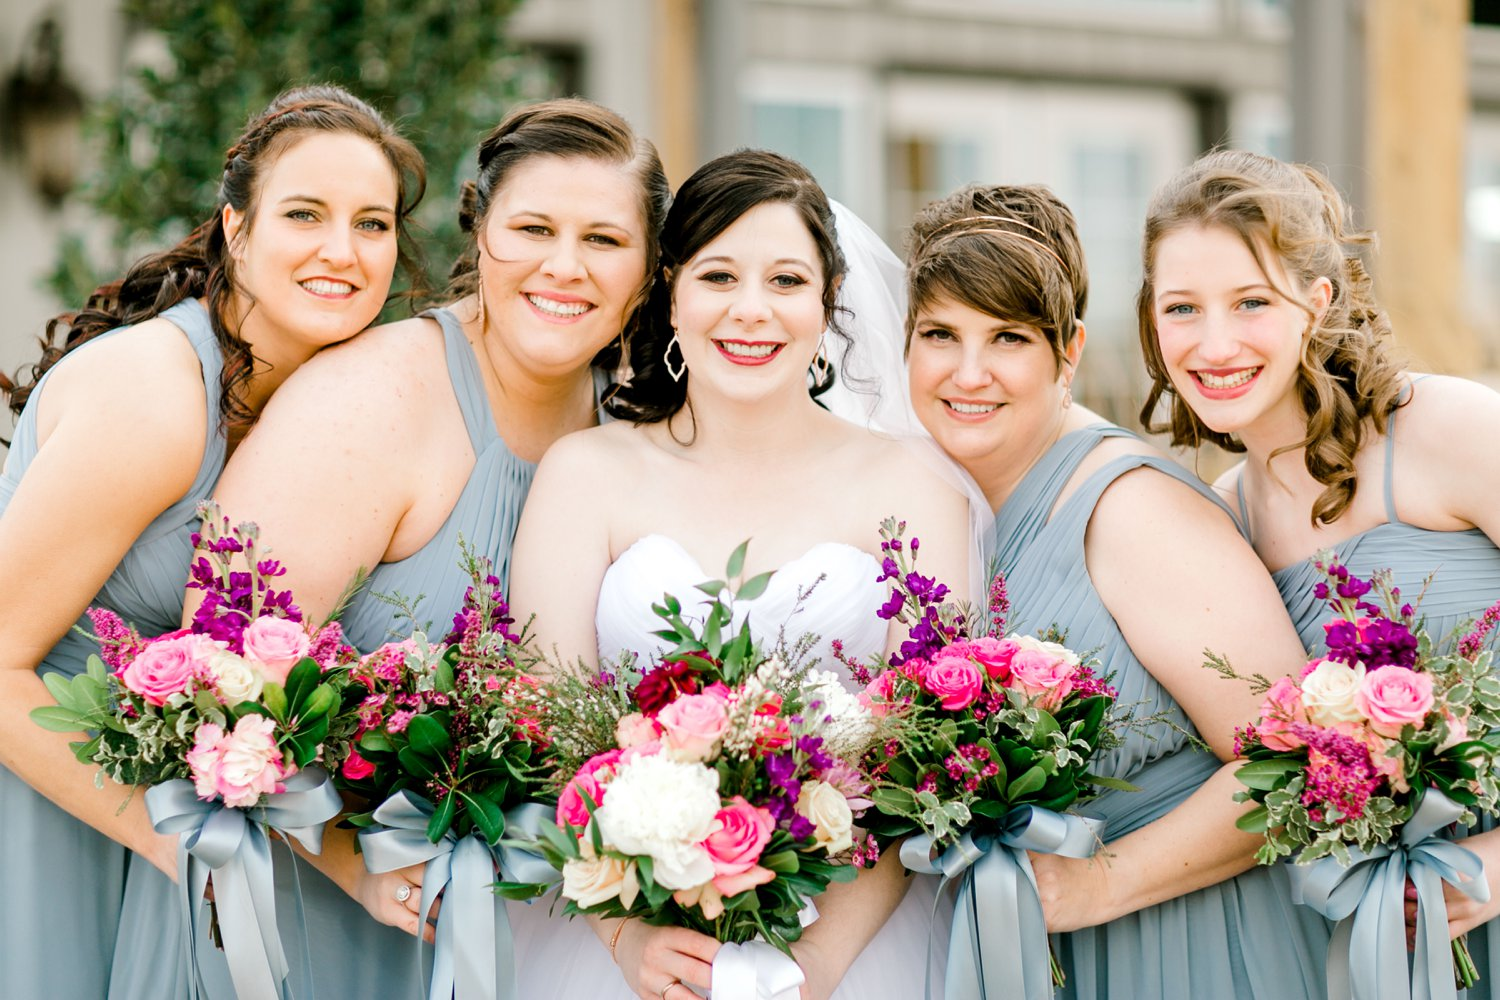 Autumn-Oaks-Events-Morgan-Andy-Lane-Wedding-Lubbock-Photography__0054.jpg